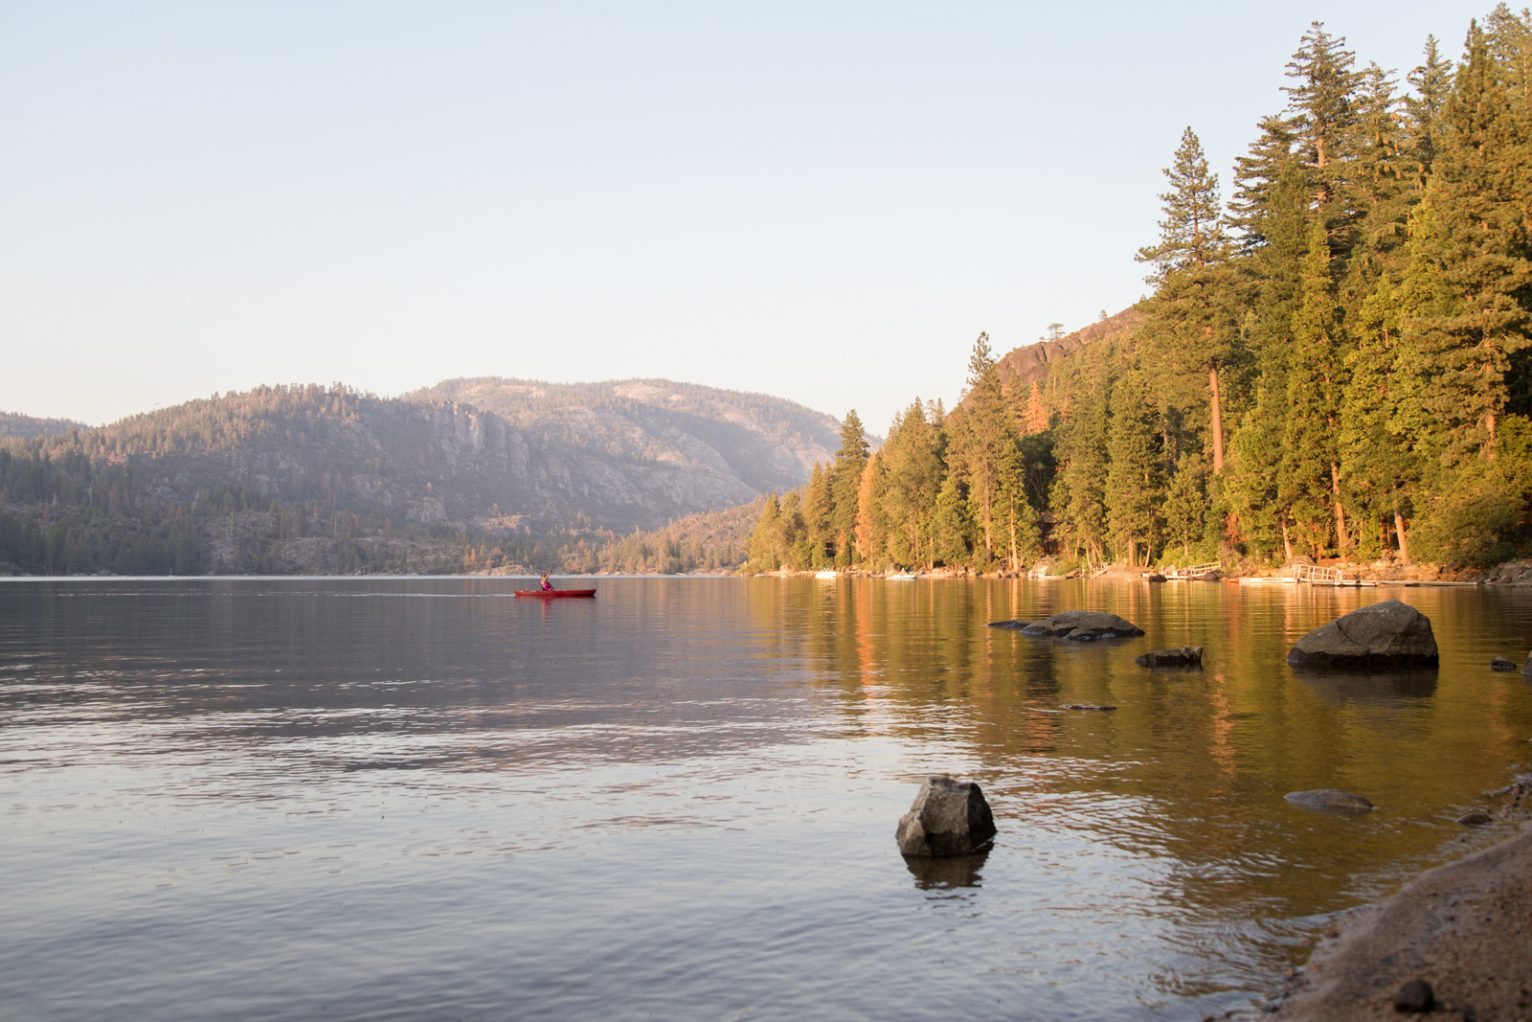 The shore at Pinecrest Lake